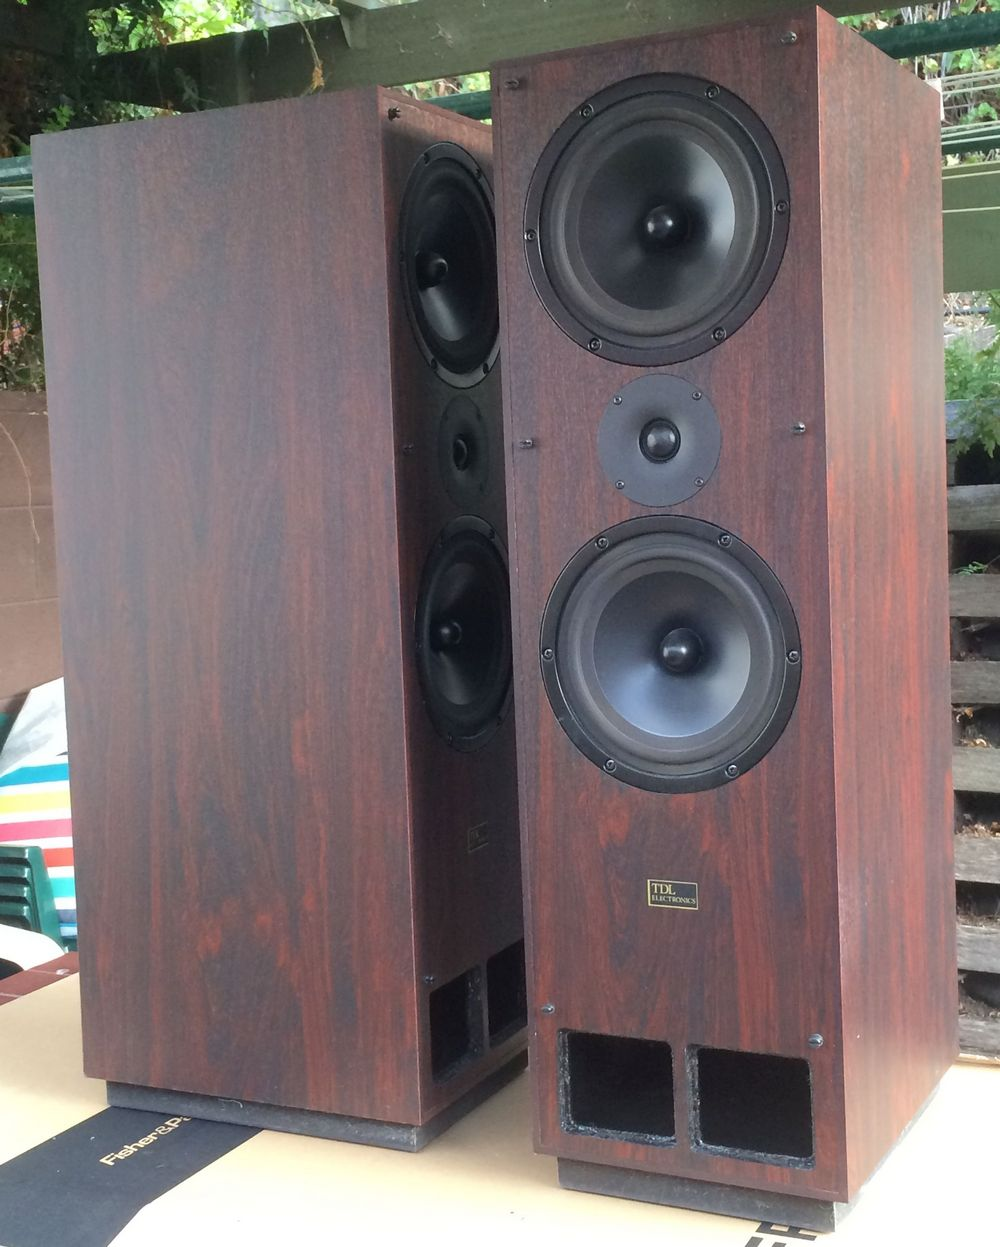 Anyone heard of TDL speakers? - Speakers & Subwoofers